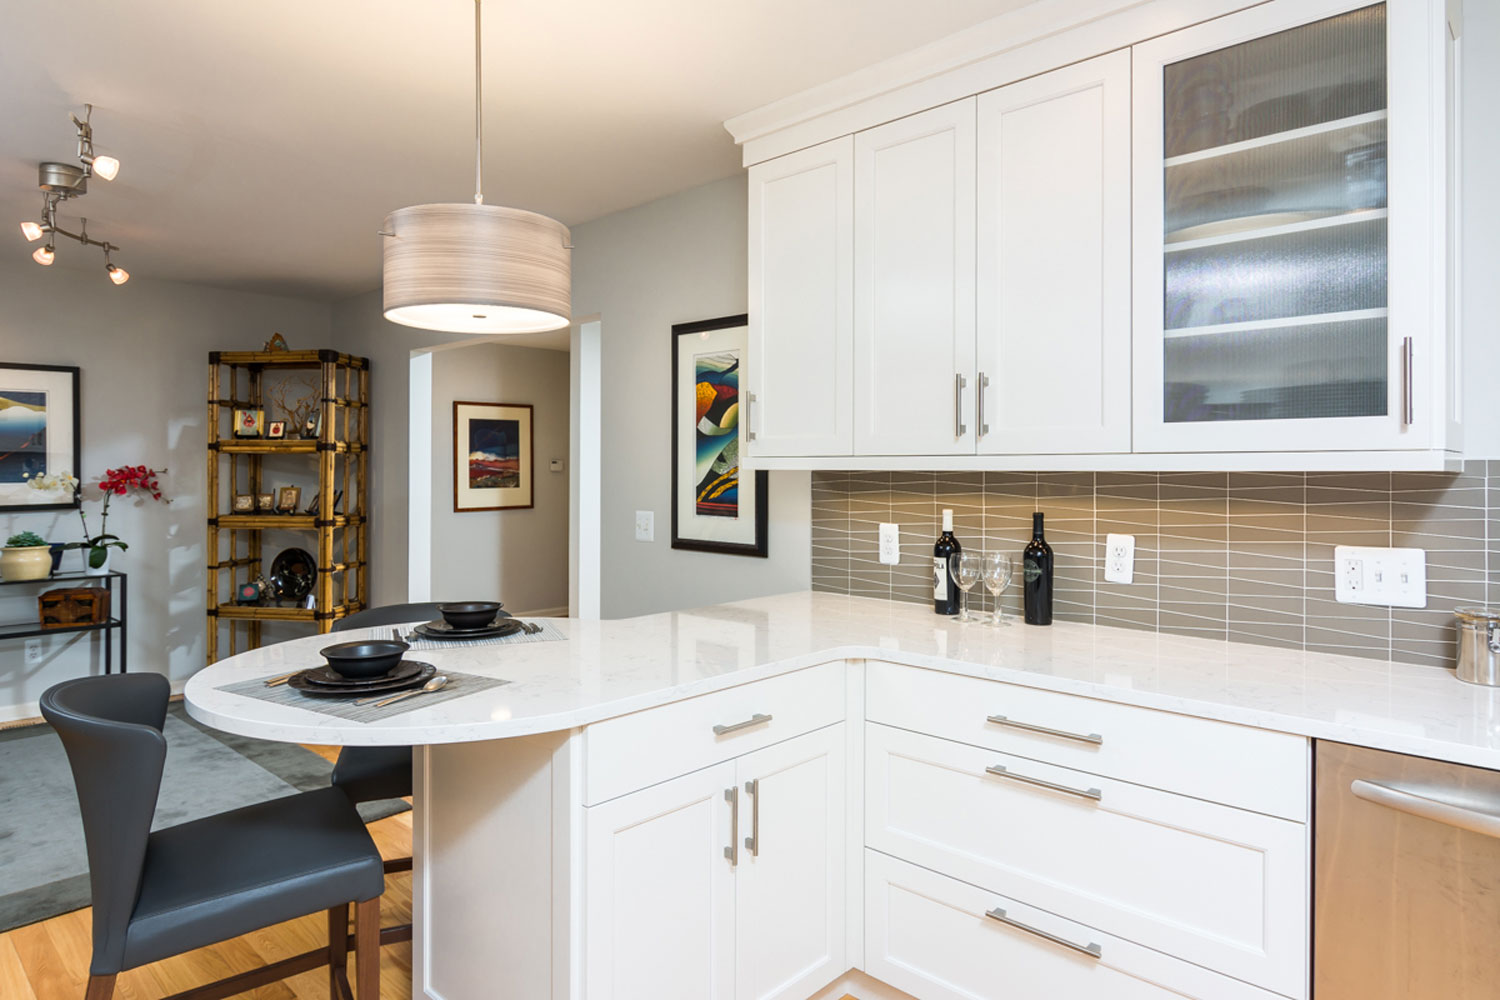 Kitchen Cabinet Construction Learn Why The Cabinet Box Matters